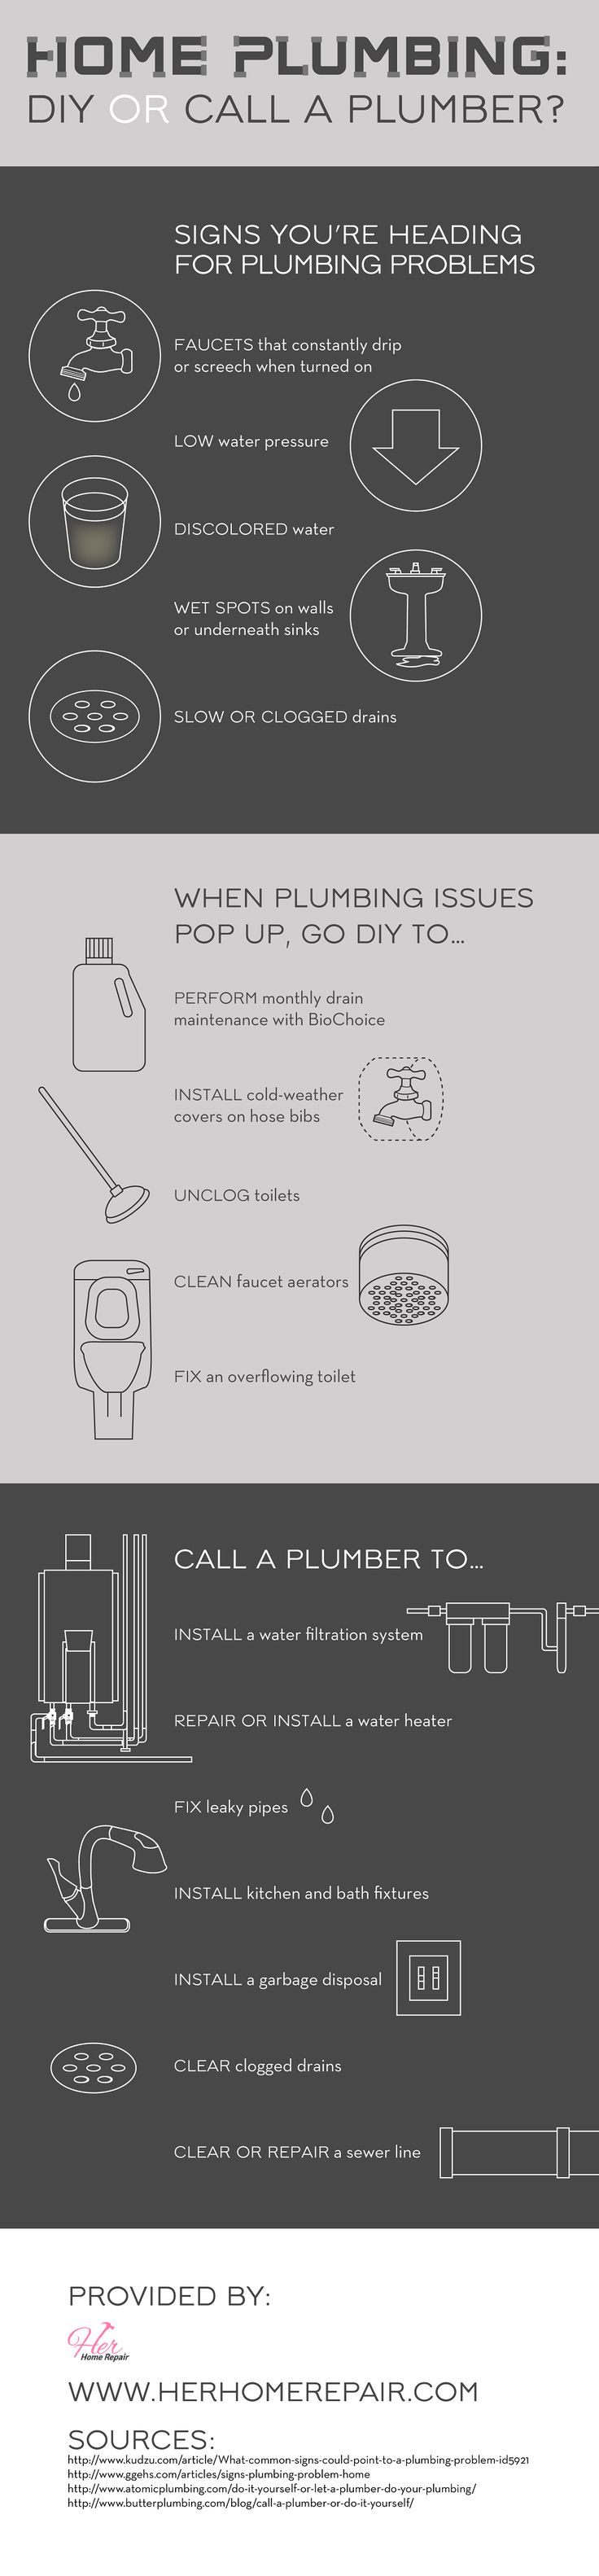 487 Best Images About Home Improvement Infographics On